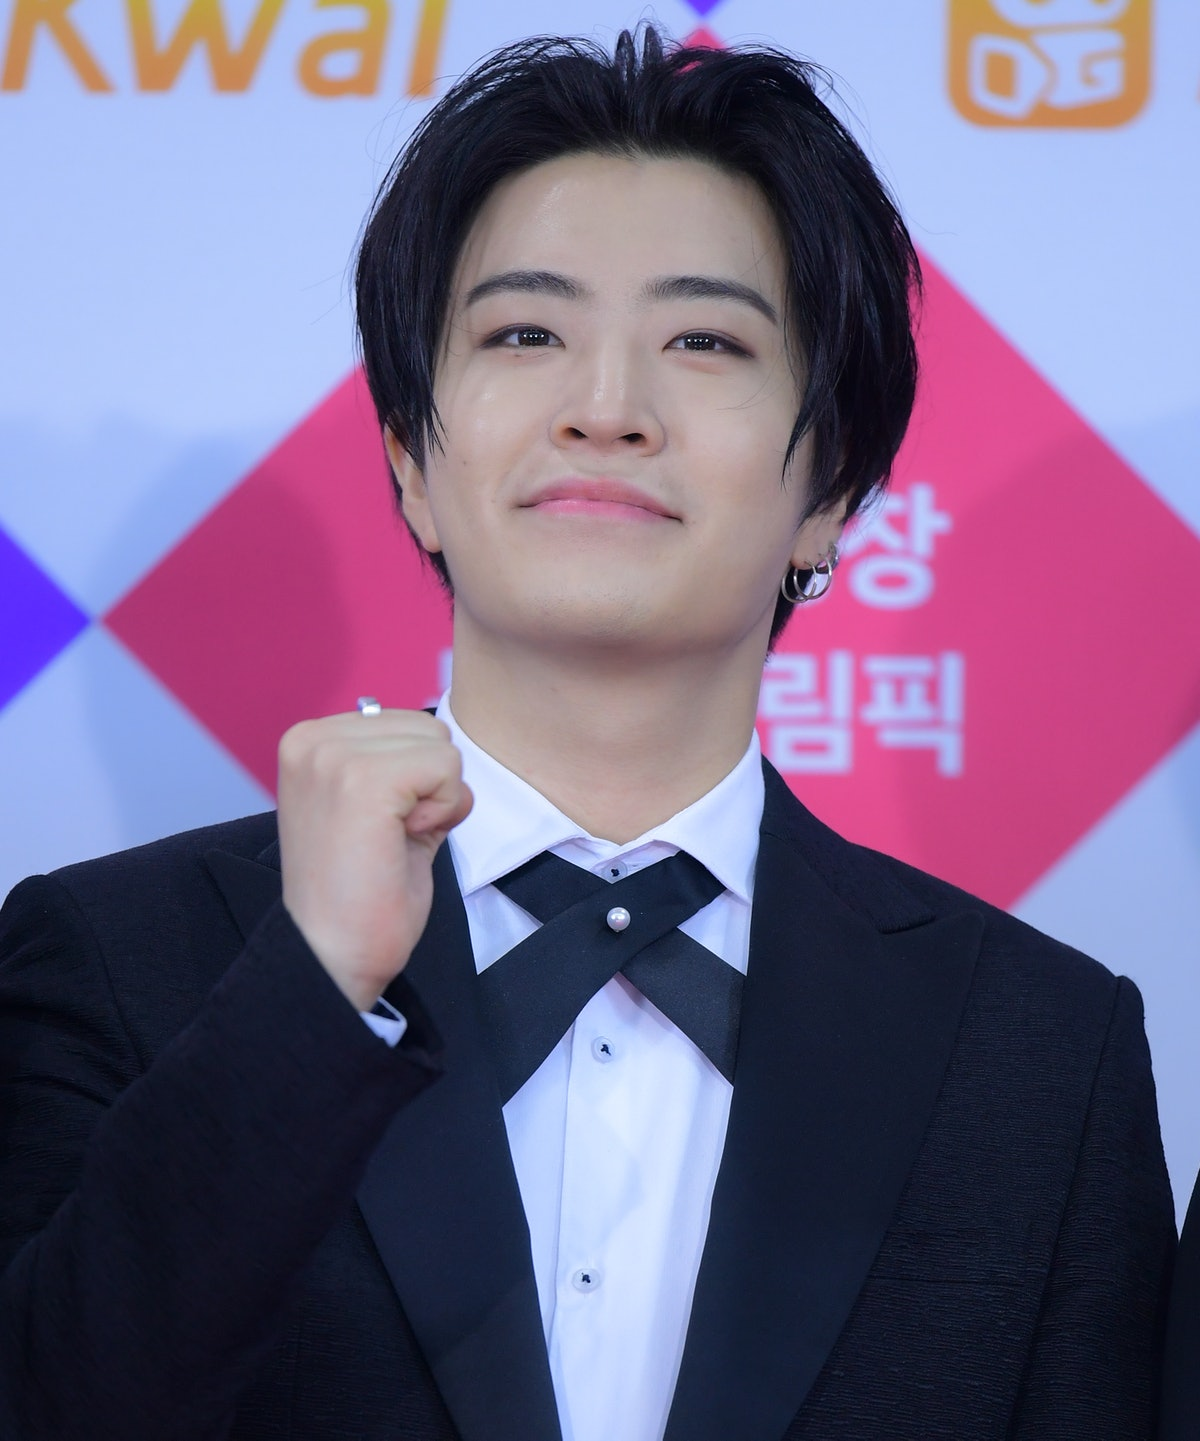 SEOUL, SOUTH KOREA - DECEMBER 25: Youngjae of GOT7 attends the 2017 SBS Gayo Daejeon at Gocheok Sky Dome on December 25, 2017 in Seoul, South Korea. (Photo by The Chosunilbo JNS/Imazins via Getty Images)